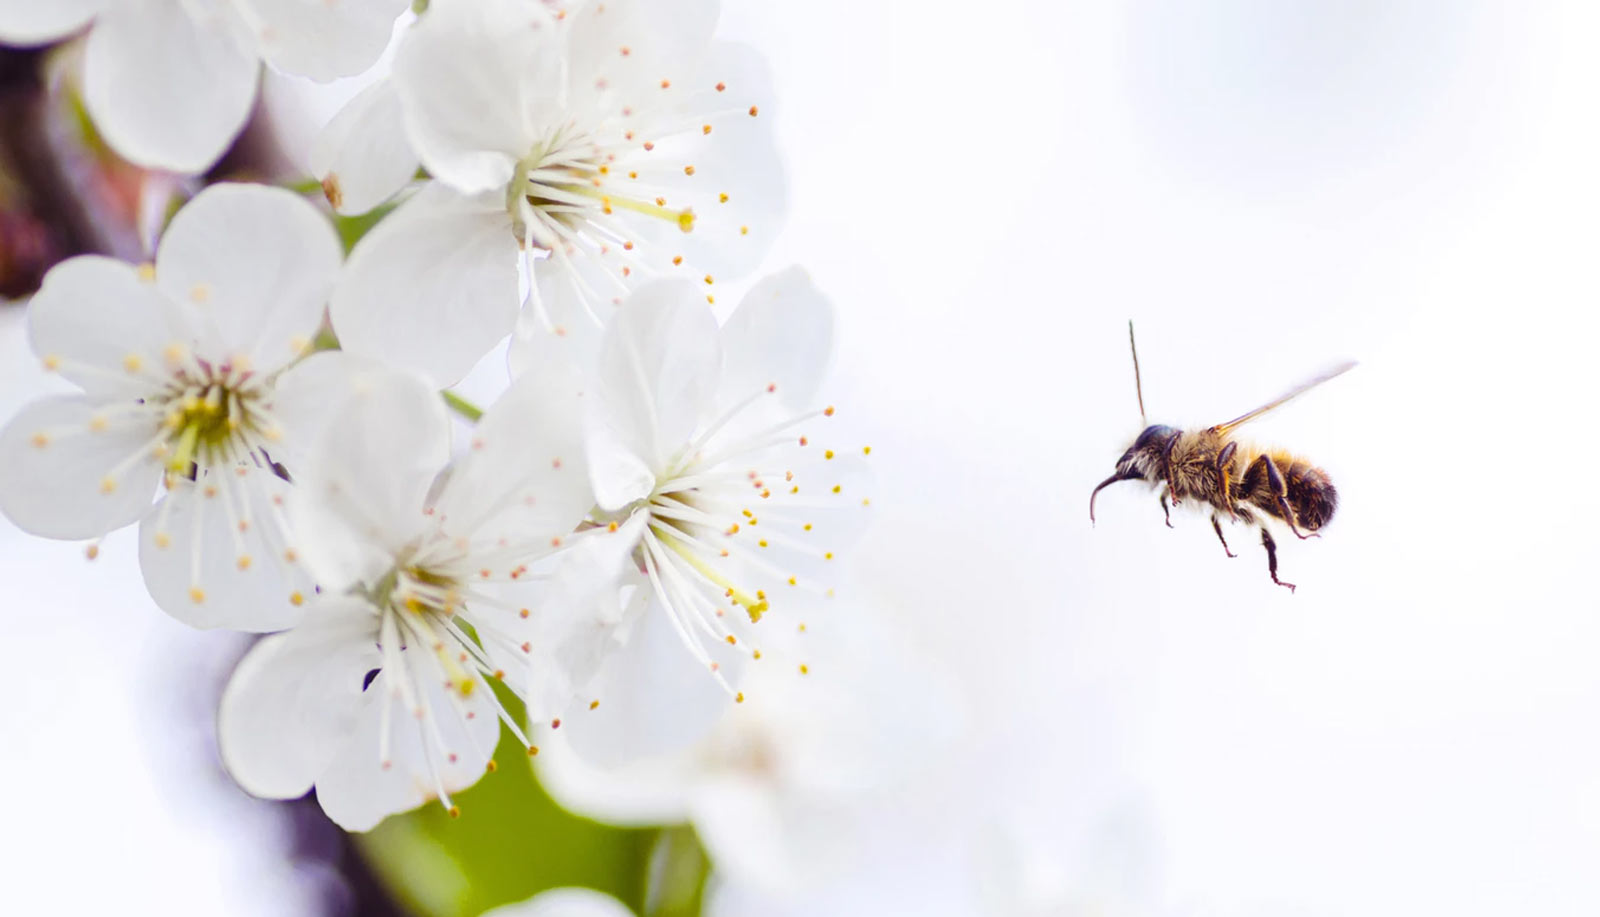 web design research symbolized by a bee pollinating flowers